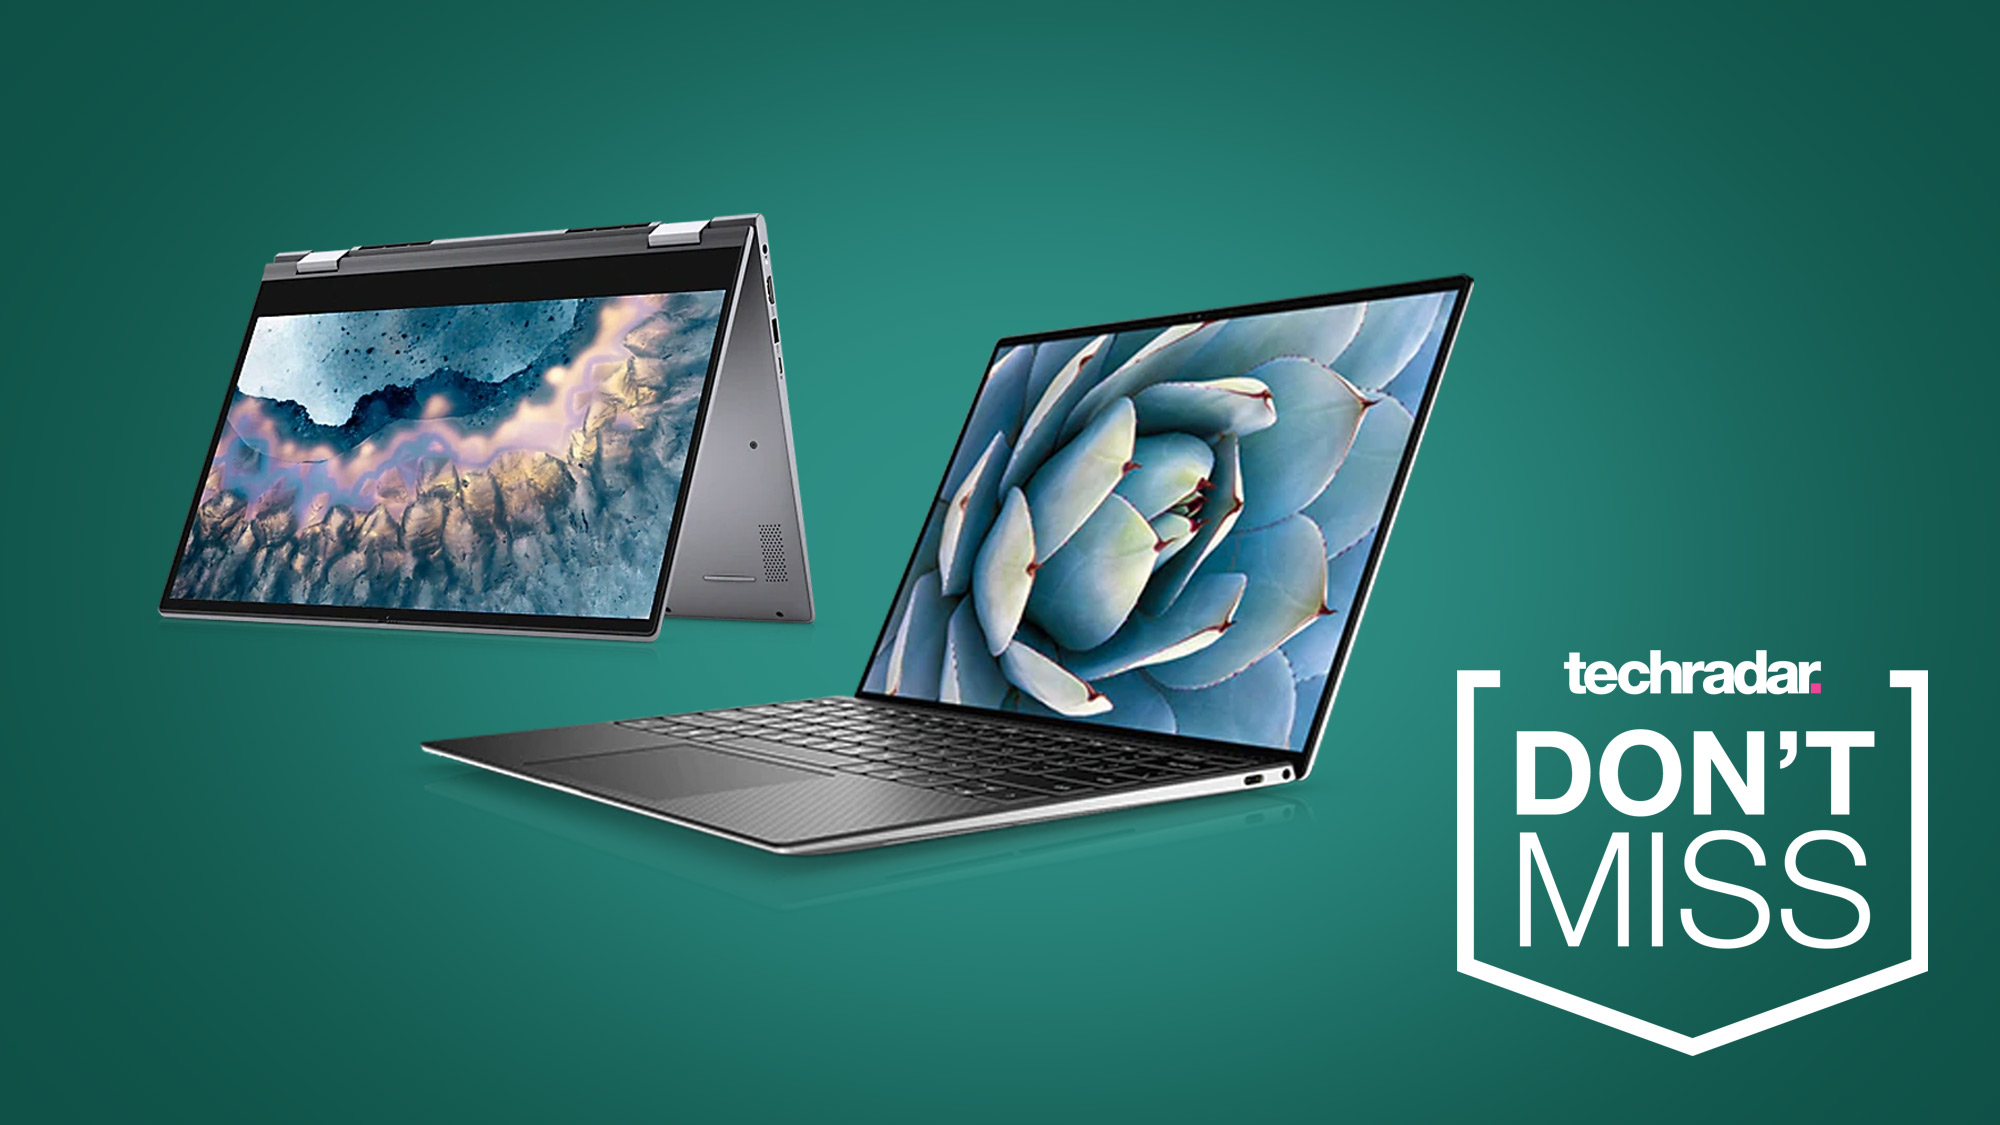 Early Black Friday laptop deals live now at Dell - save up to $300 on Dell XPS